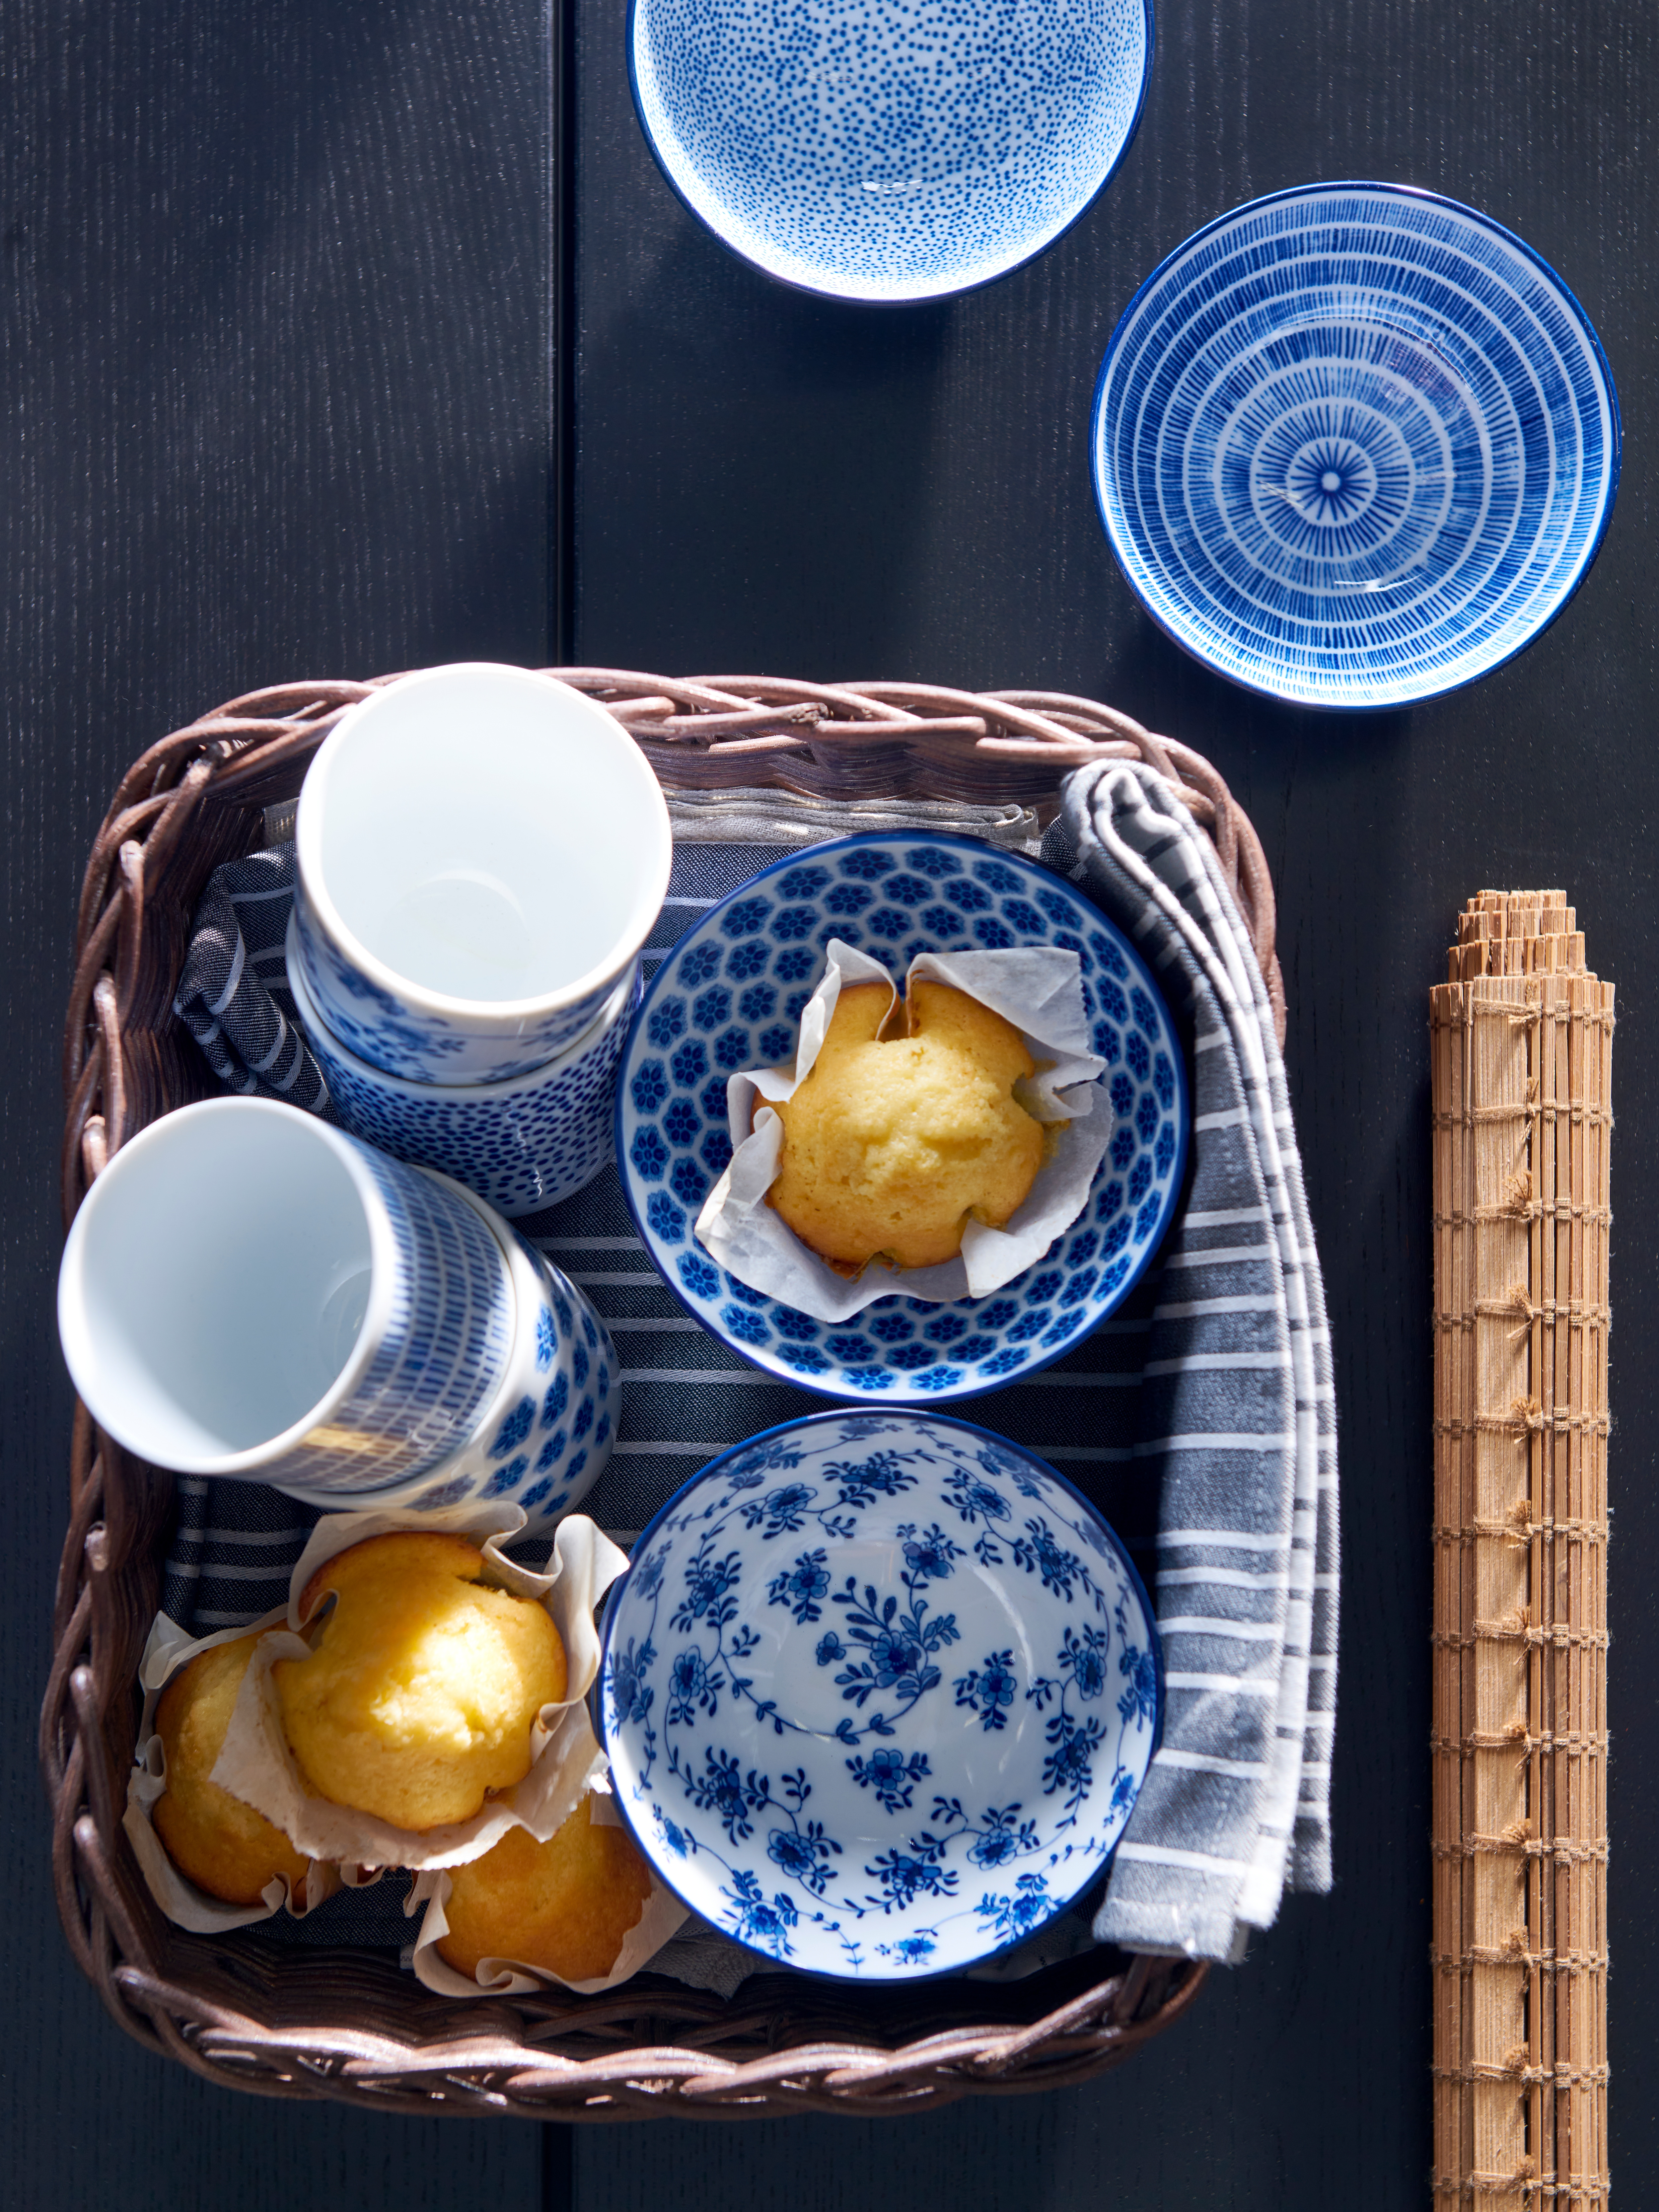 Table seen from above with a basket of four bowls and four cups with white and blue patterns, and a place mat next to it.